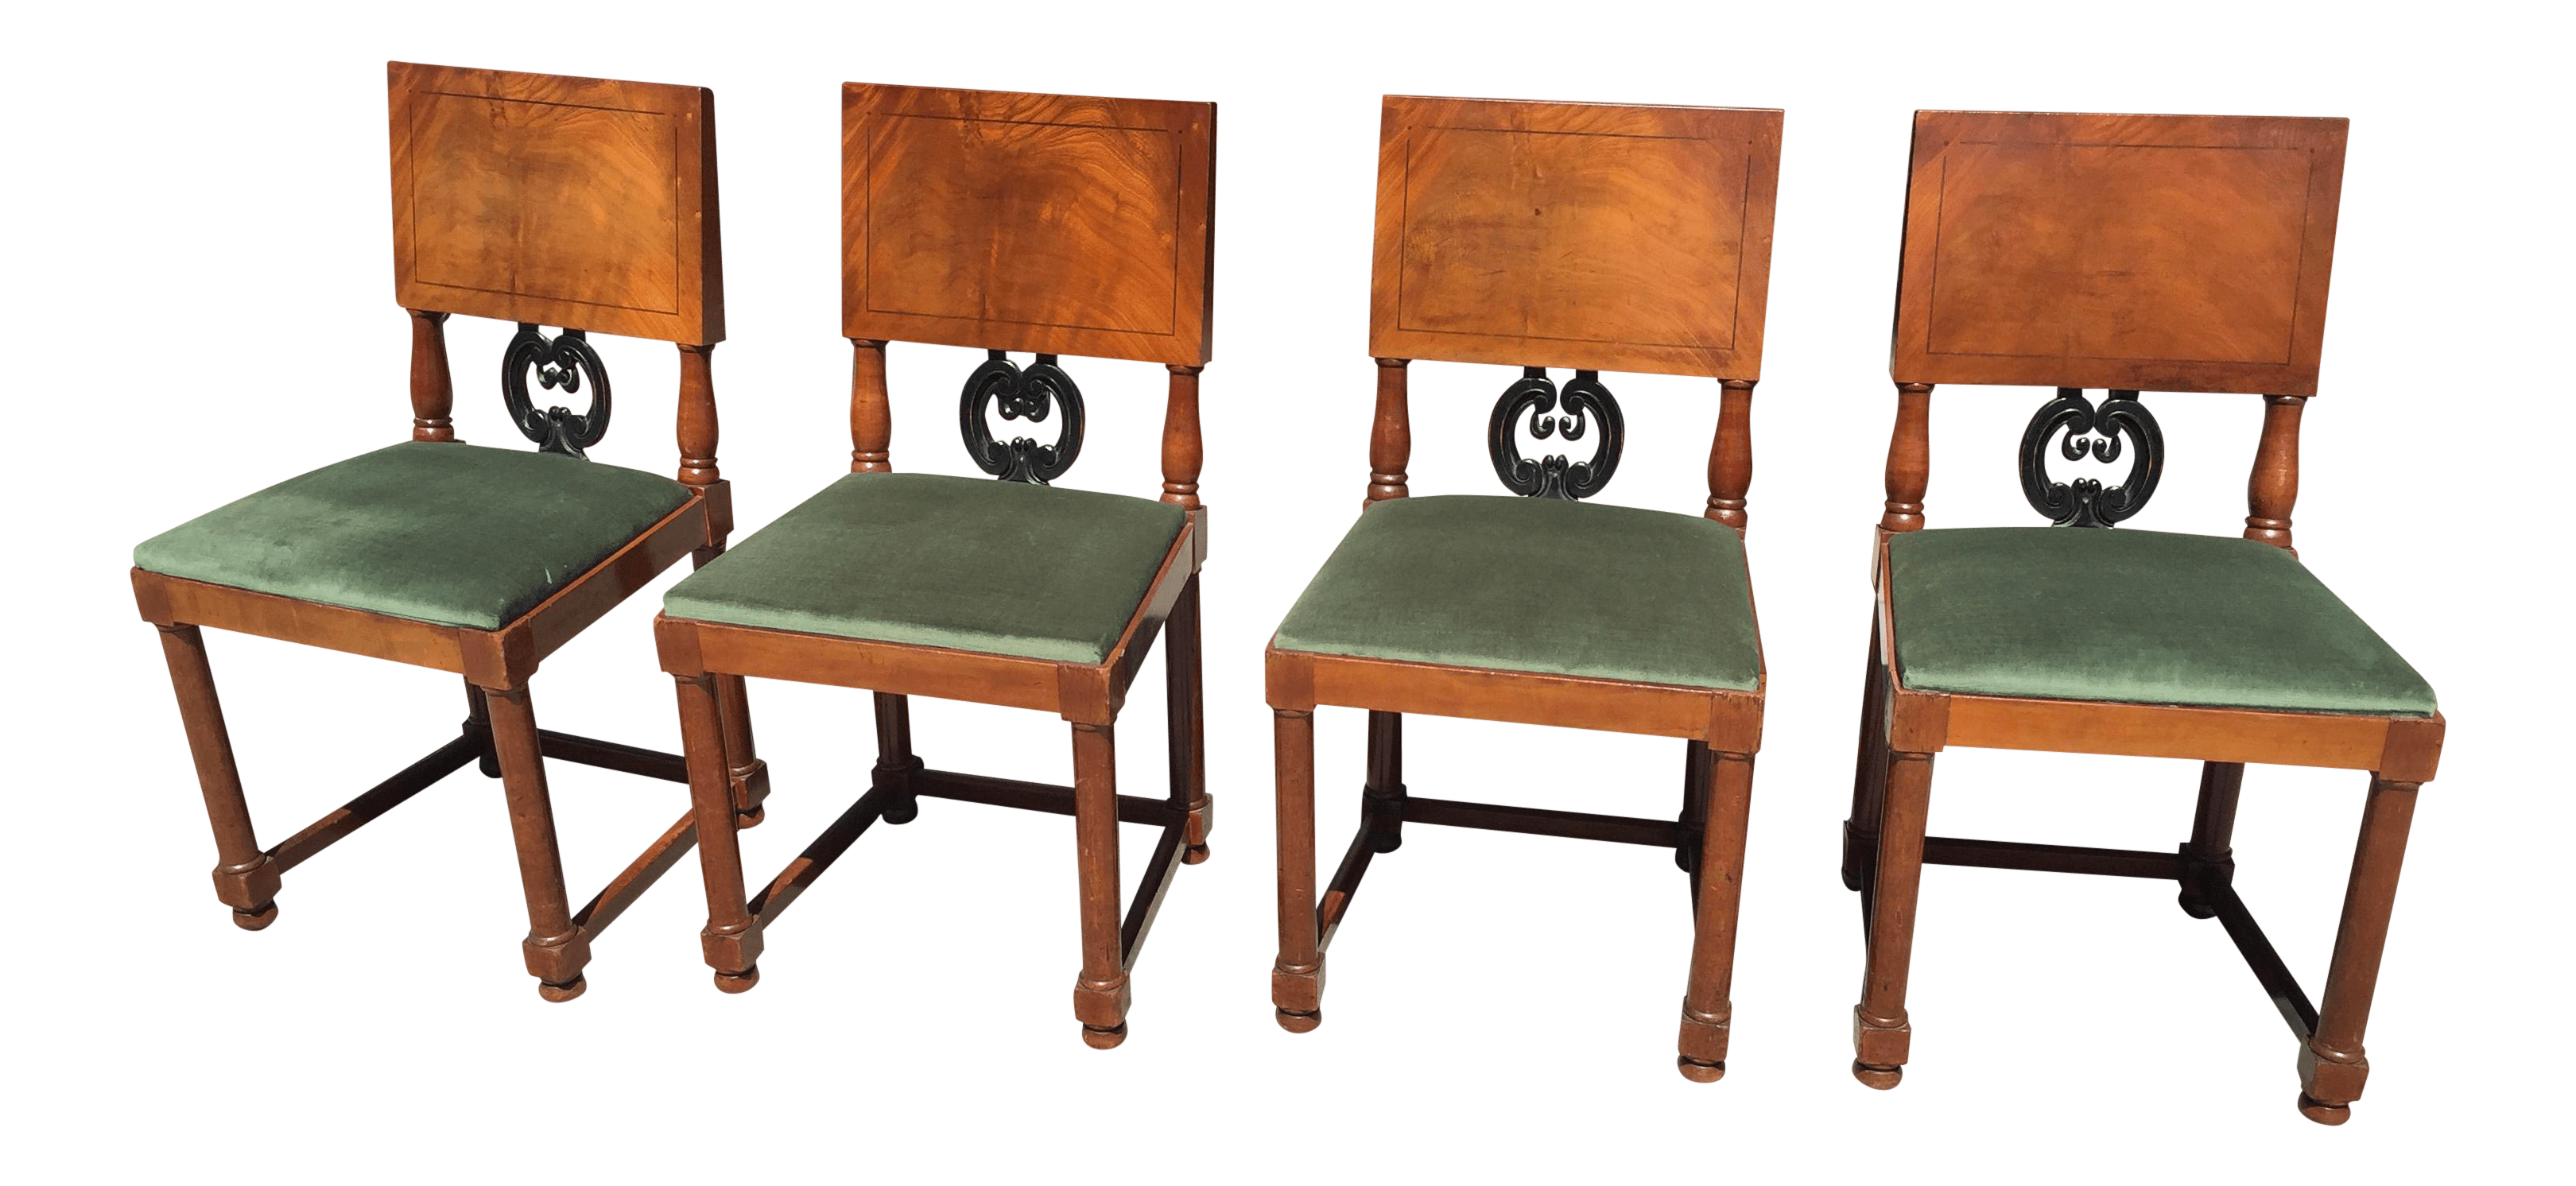 Art Deco Dining Chairs Four Art Deco Dining Chairs